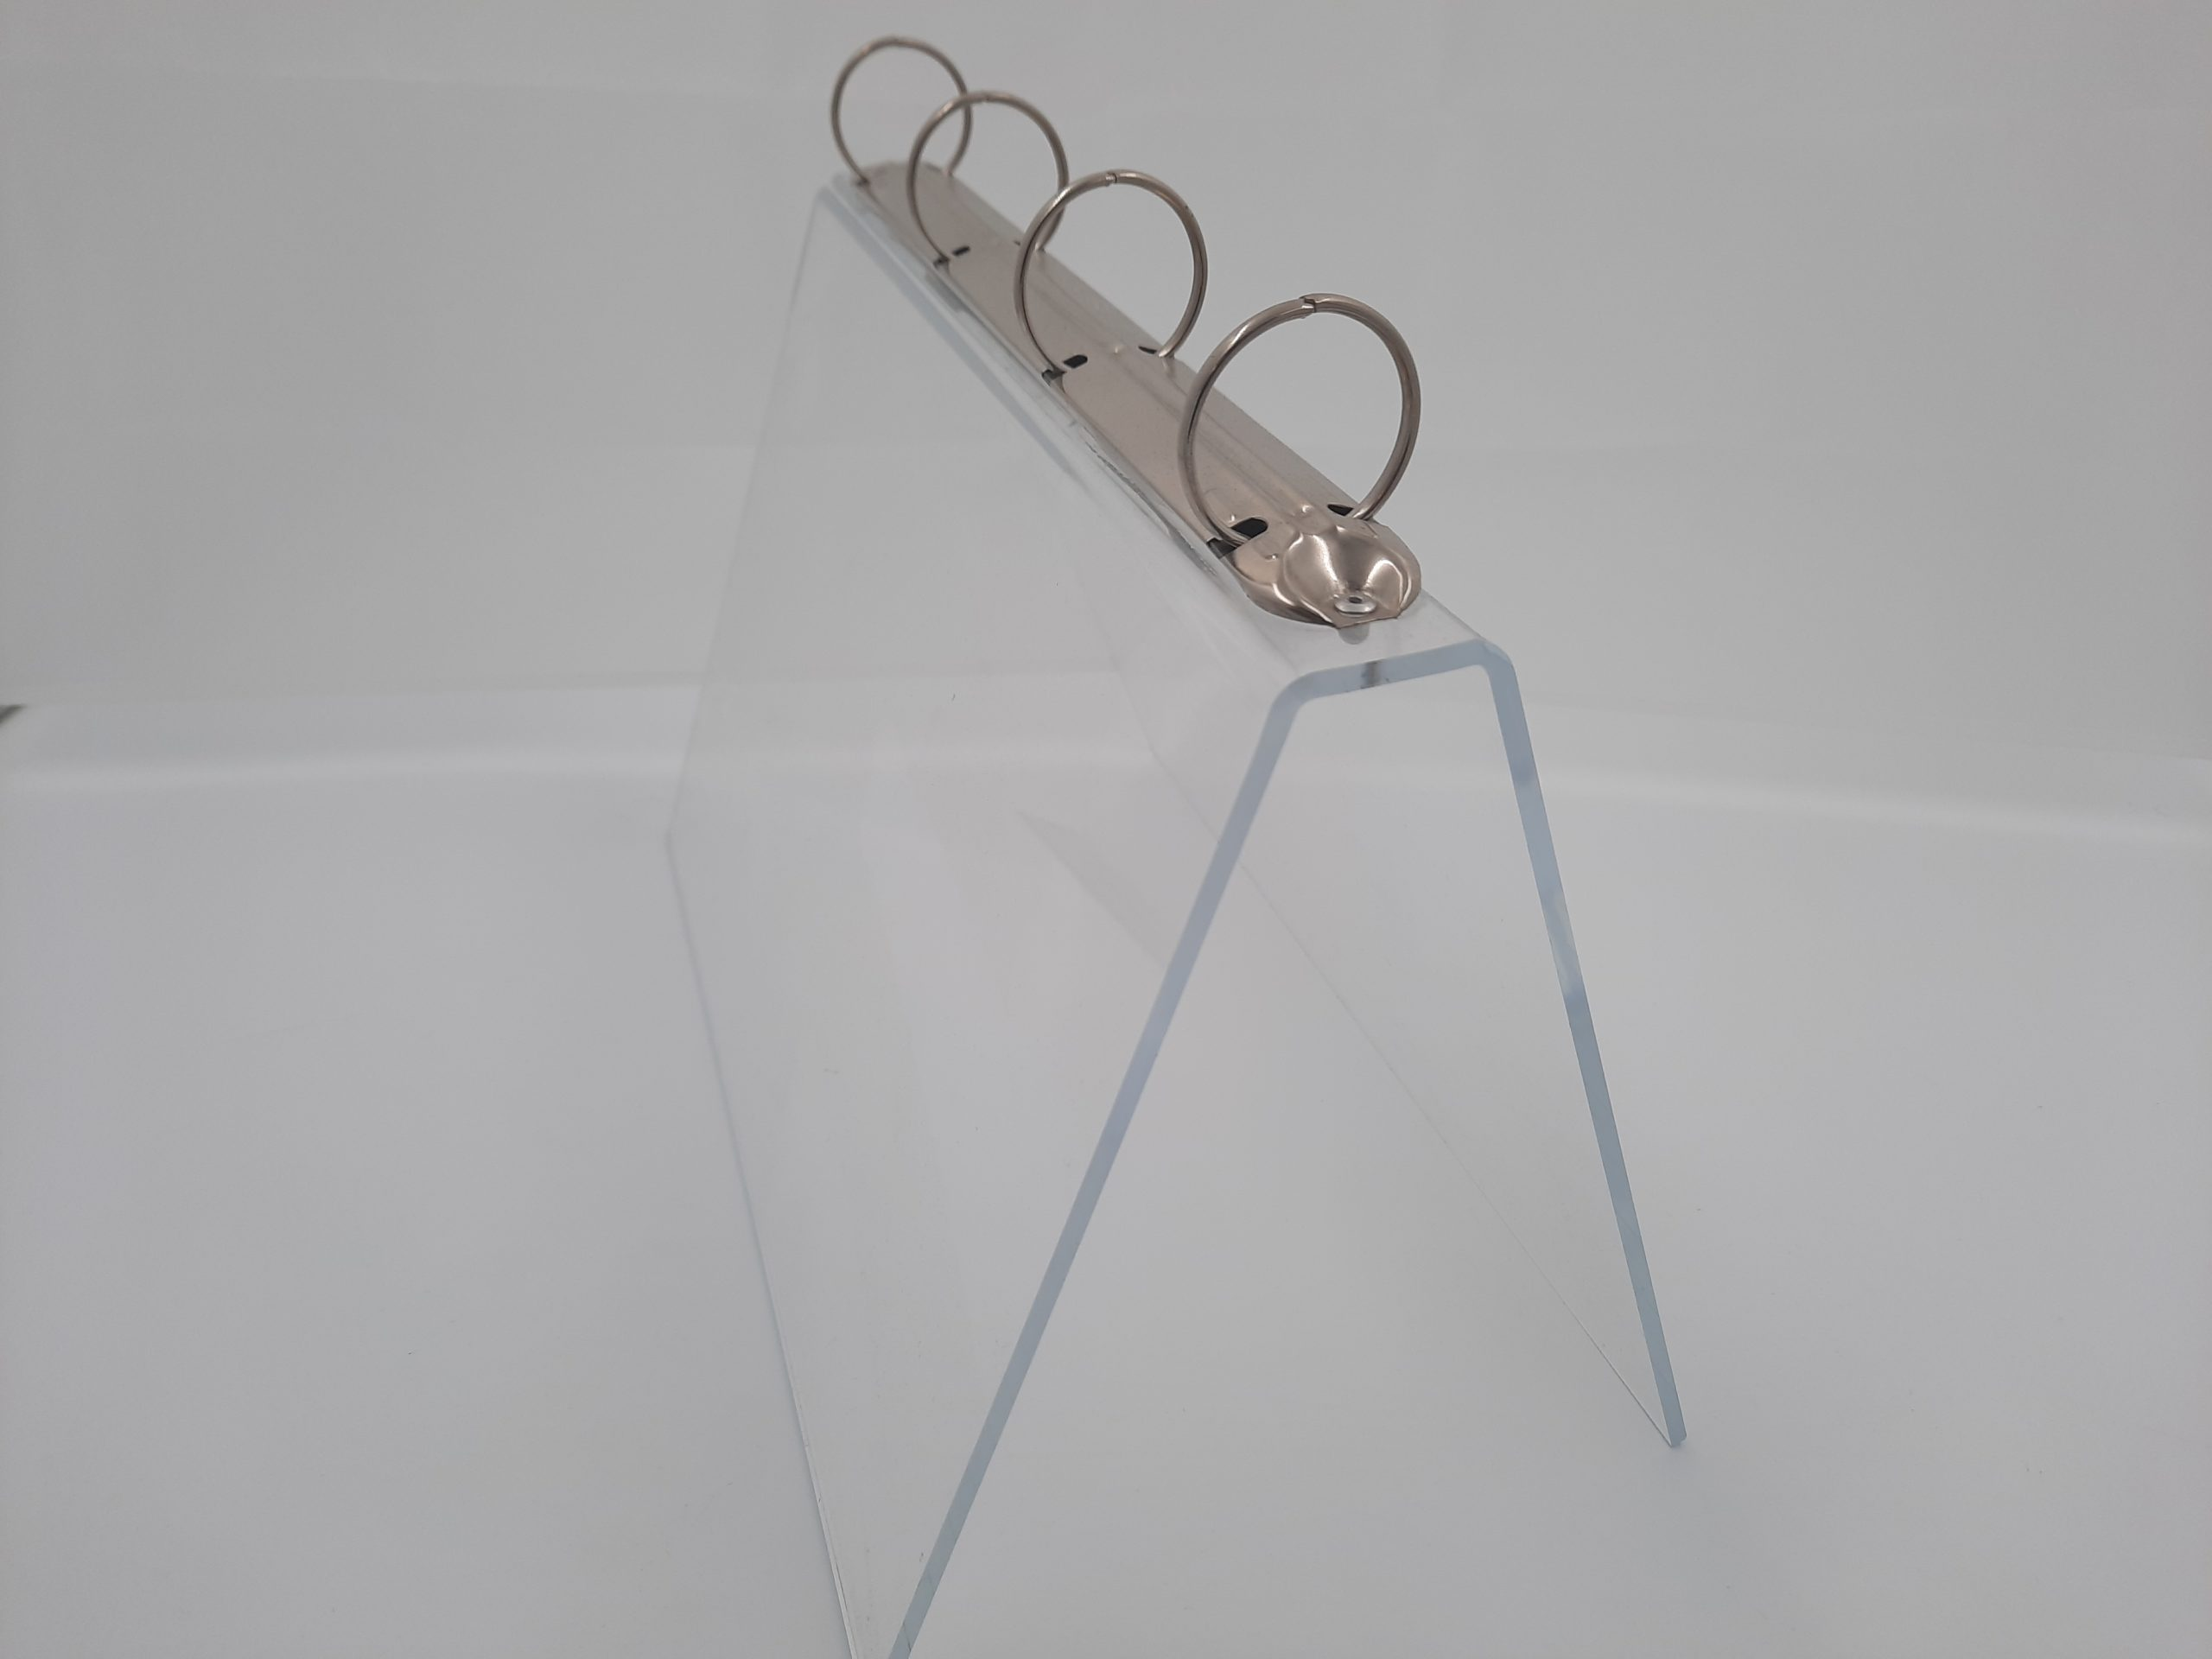 acrylic ring binder stand